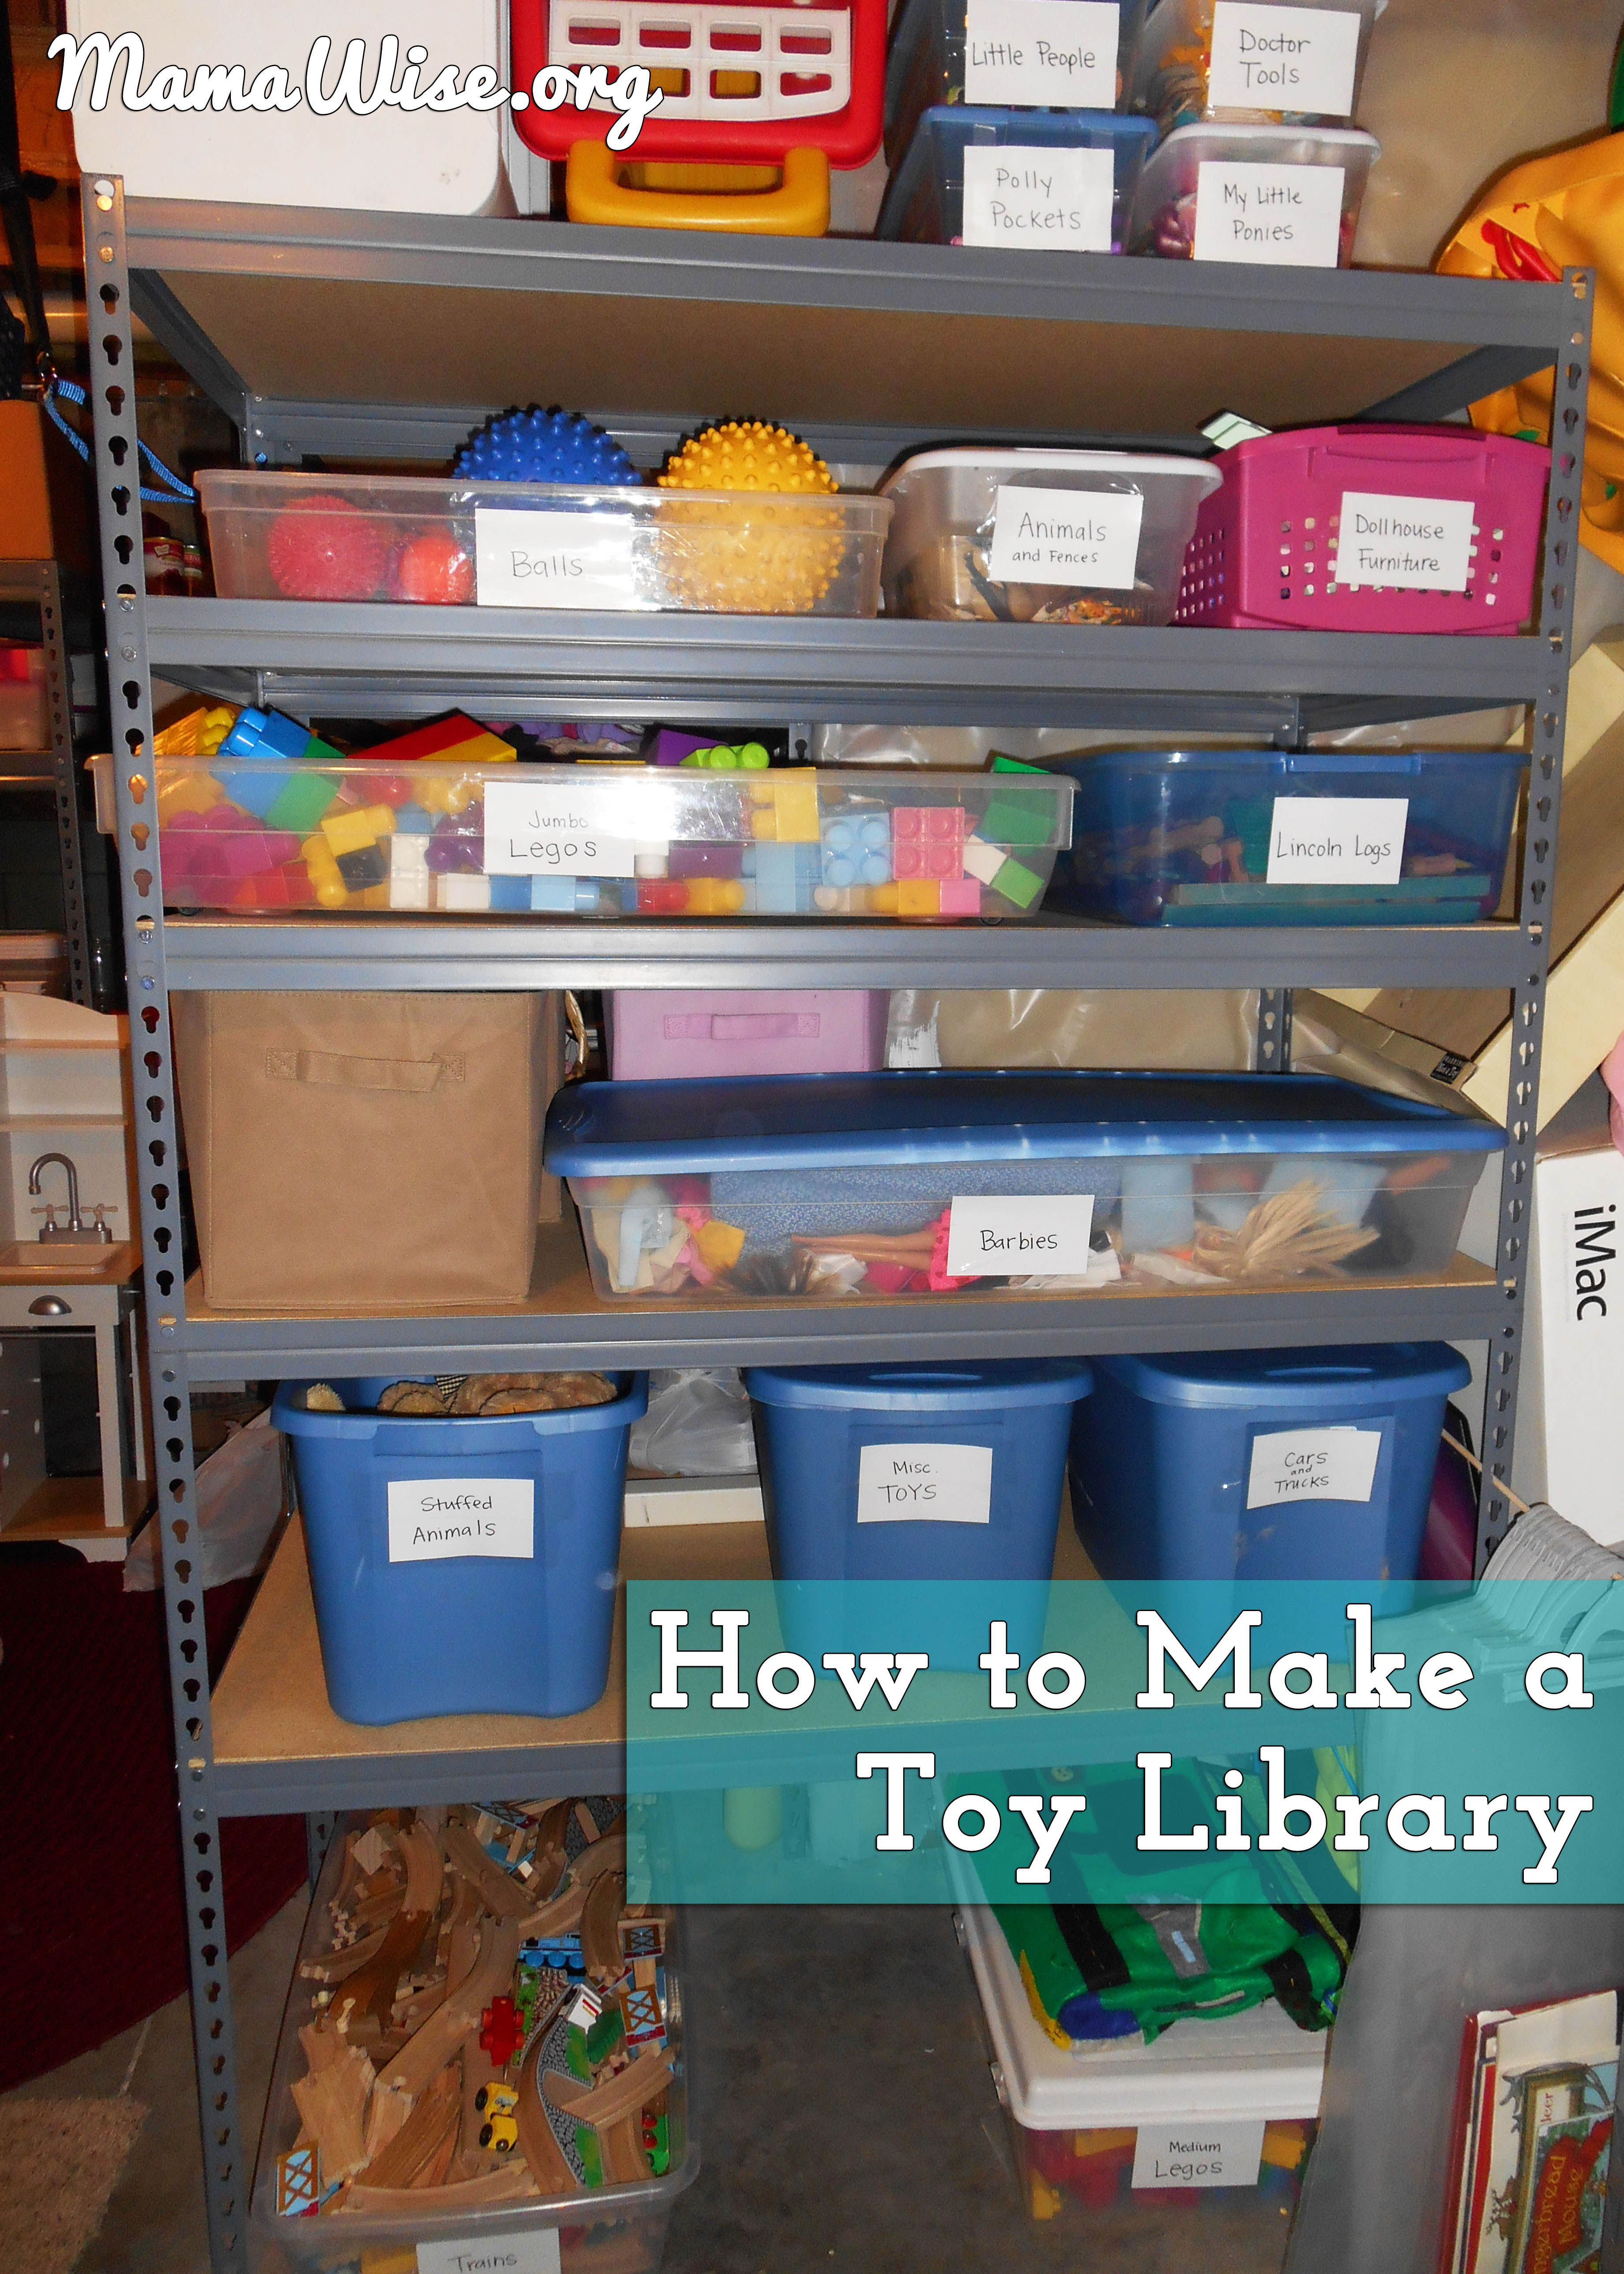 """TOY LIBRARY: We created a shelf down in our basement where we store ALL the toys. We call it the Toy Library or Toy Shelf. About once a week we have a """"Toy Swap"""" where we exchange the toys that they have had upstairs that week for a new set of toys for the week. Usually we only bring up 4 or 5 activities at a time."""